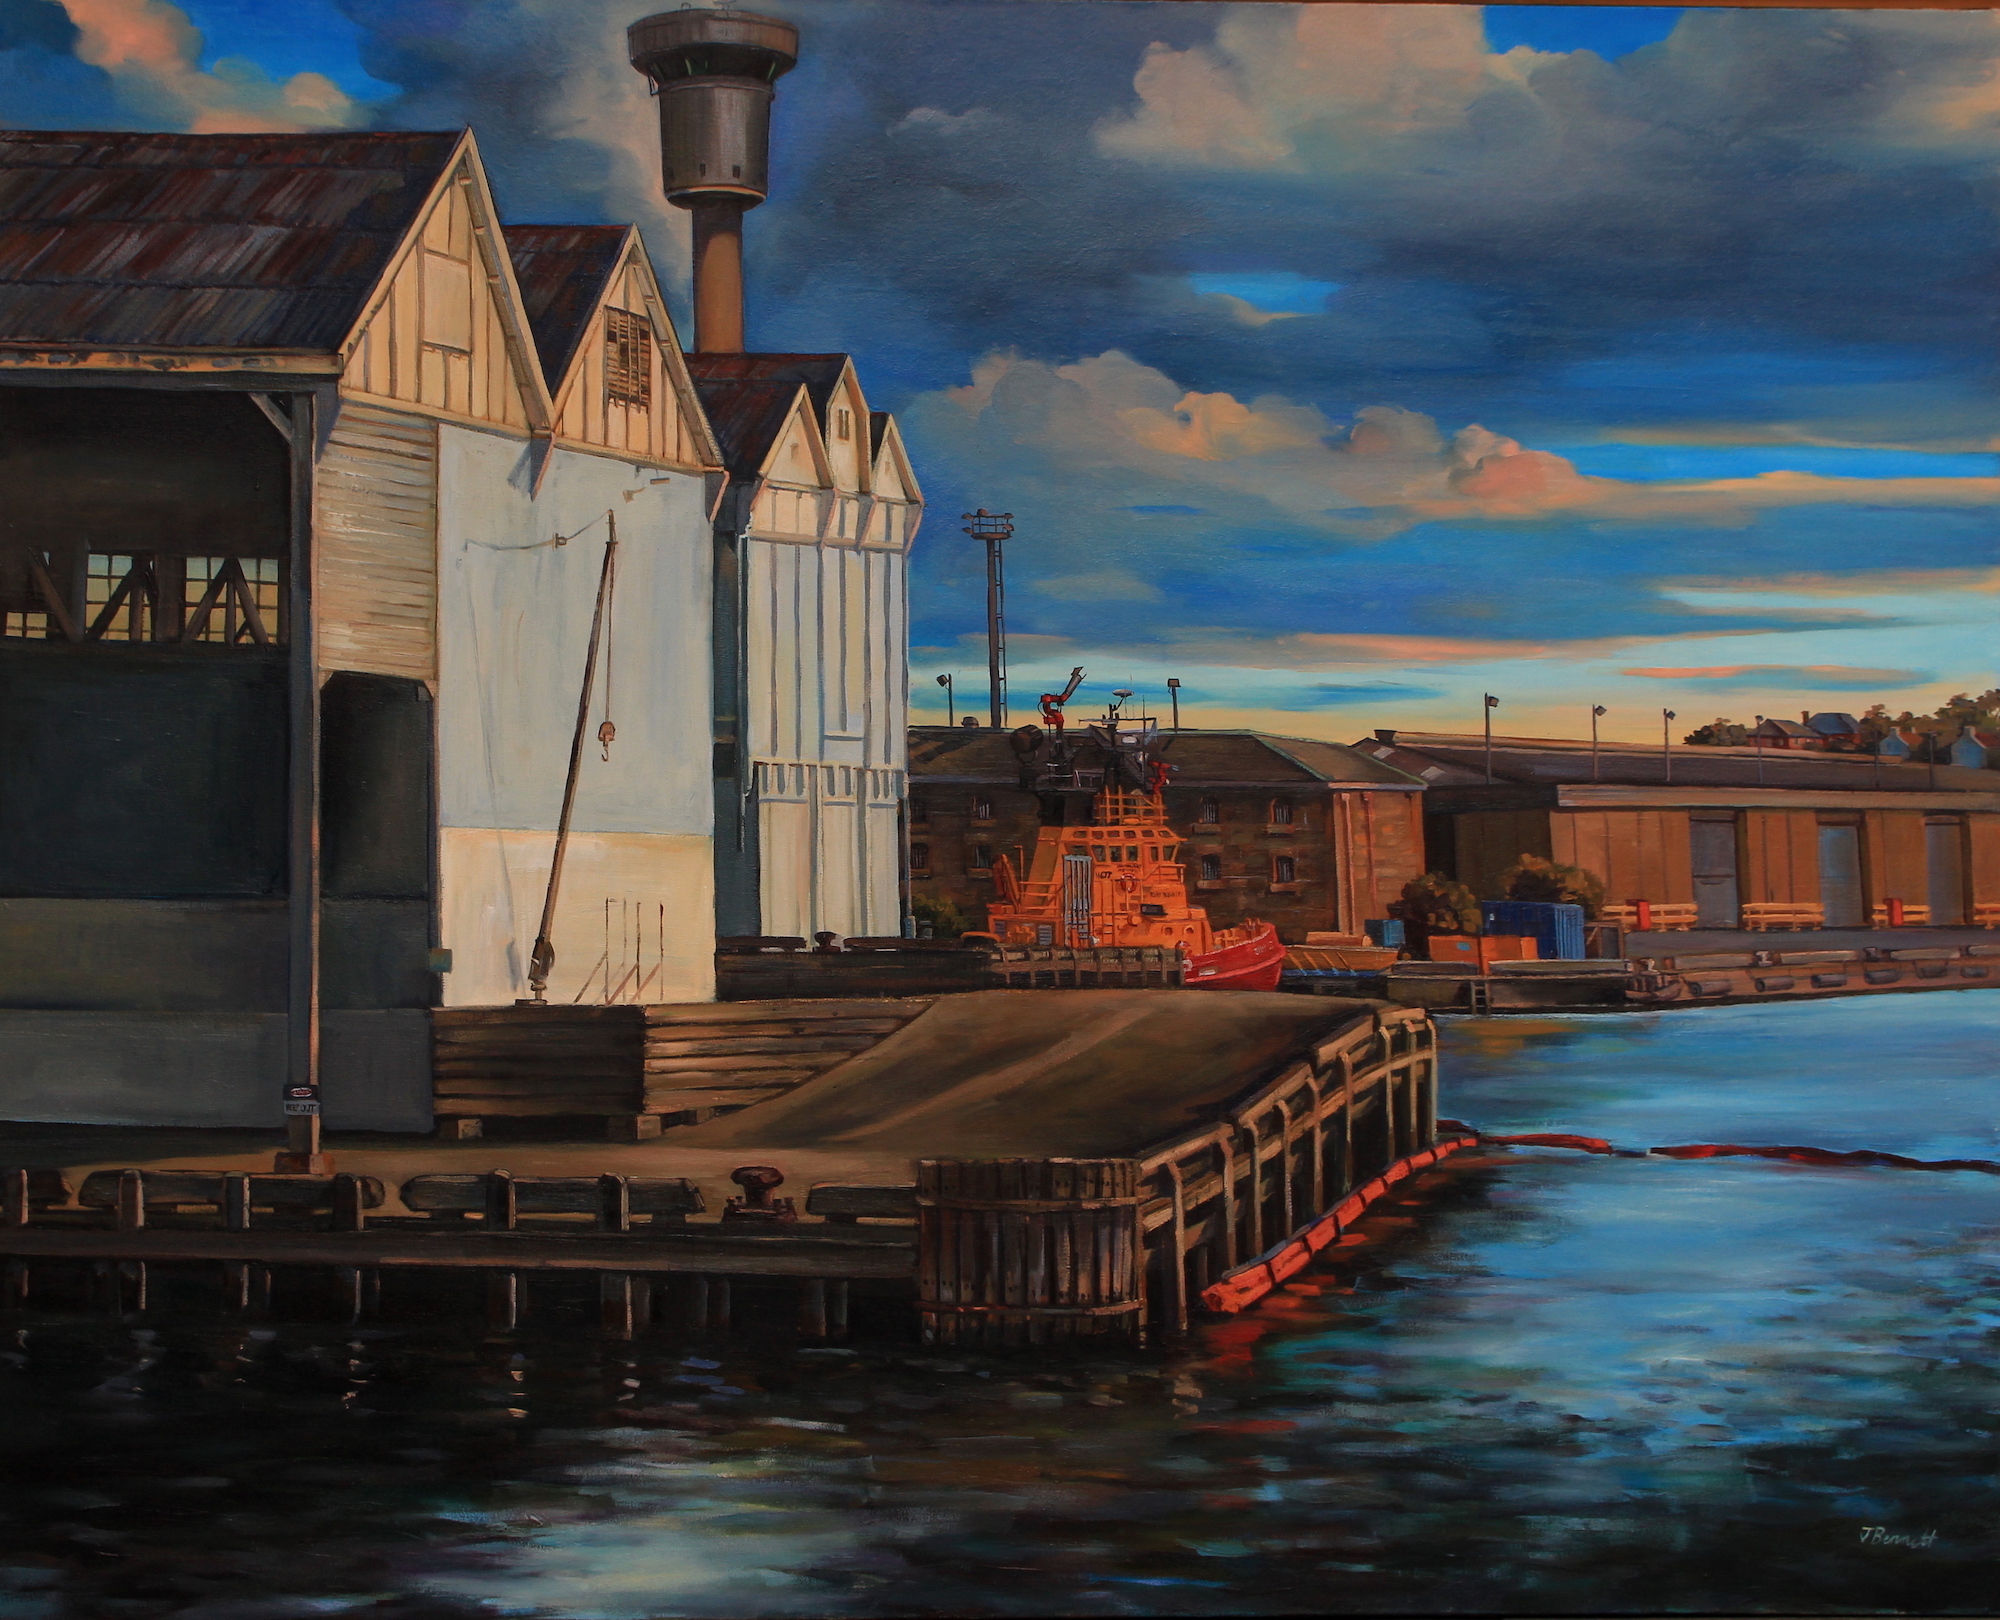 Paintings of a passing port